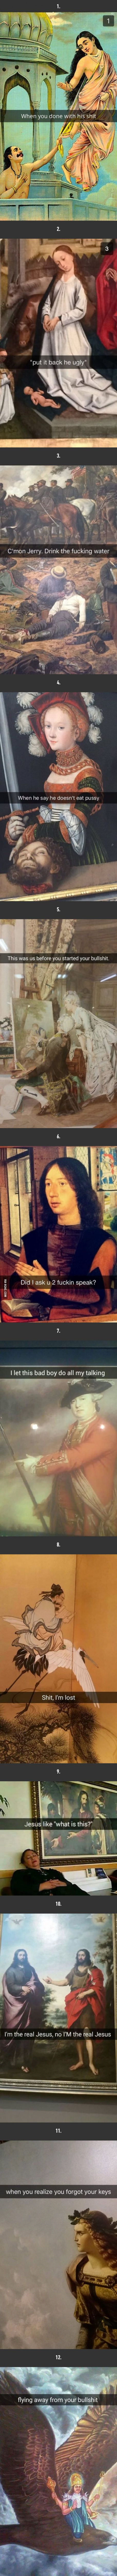 Classical Paintings + Snapchat = Pure Comedy Gold